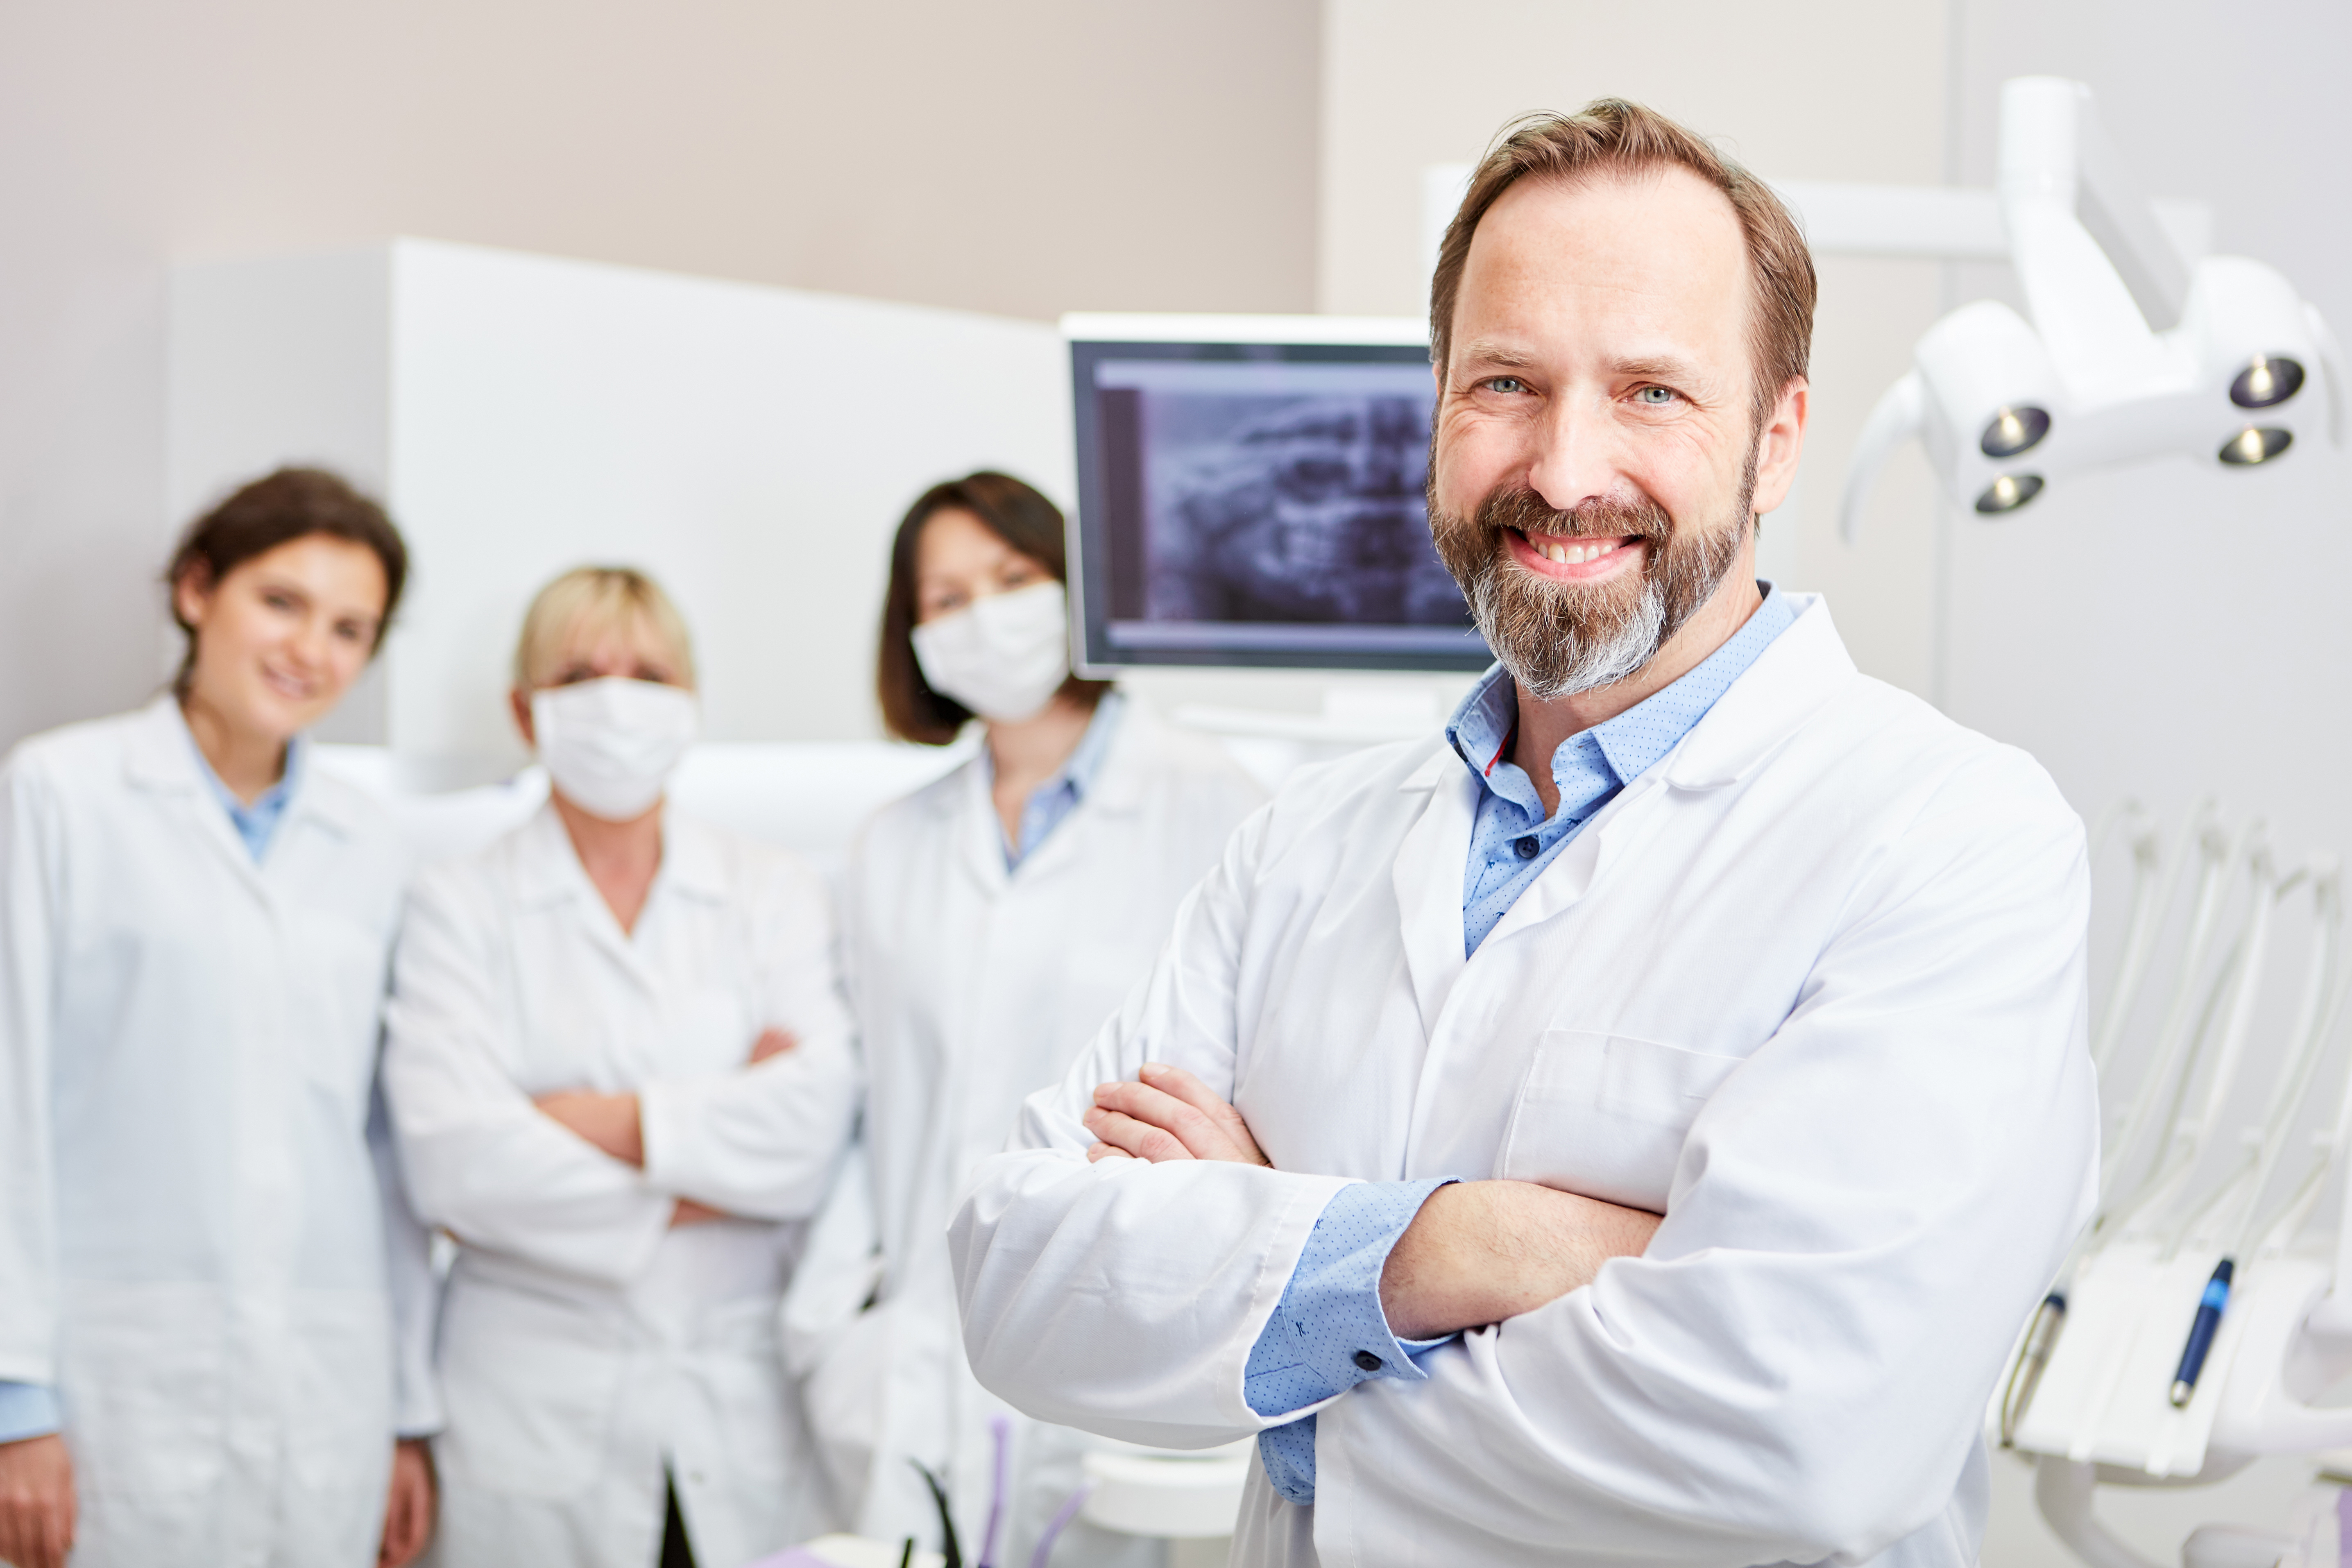 Why are patients afraid of the dentist